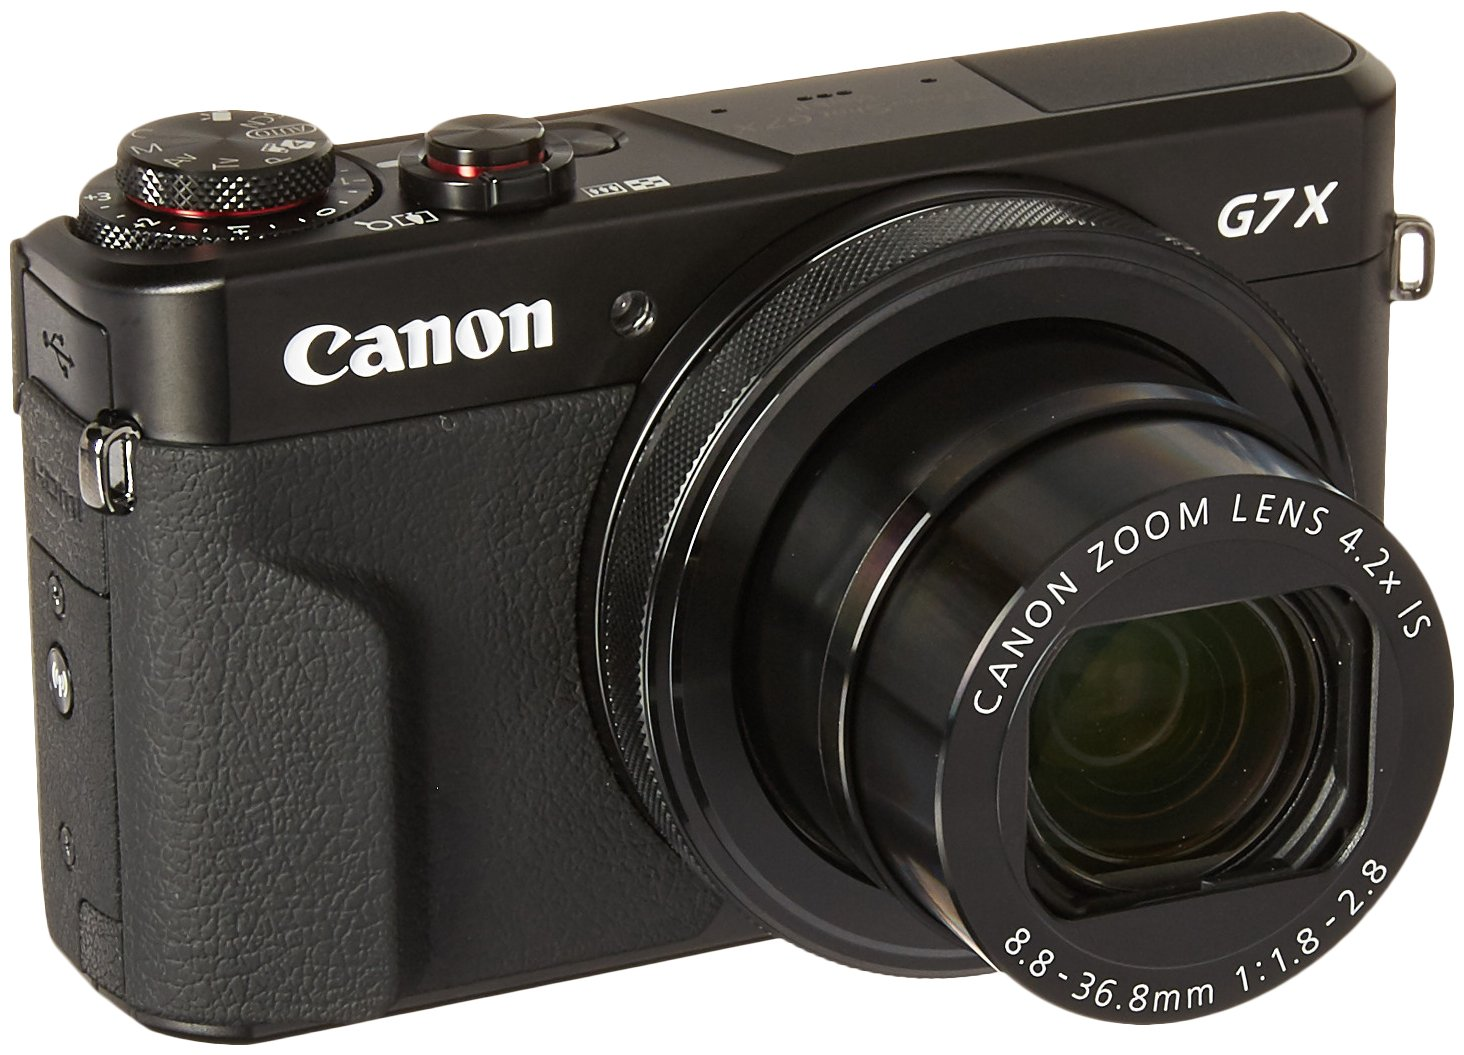 Canon G7X II Review